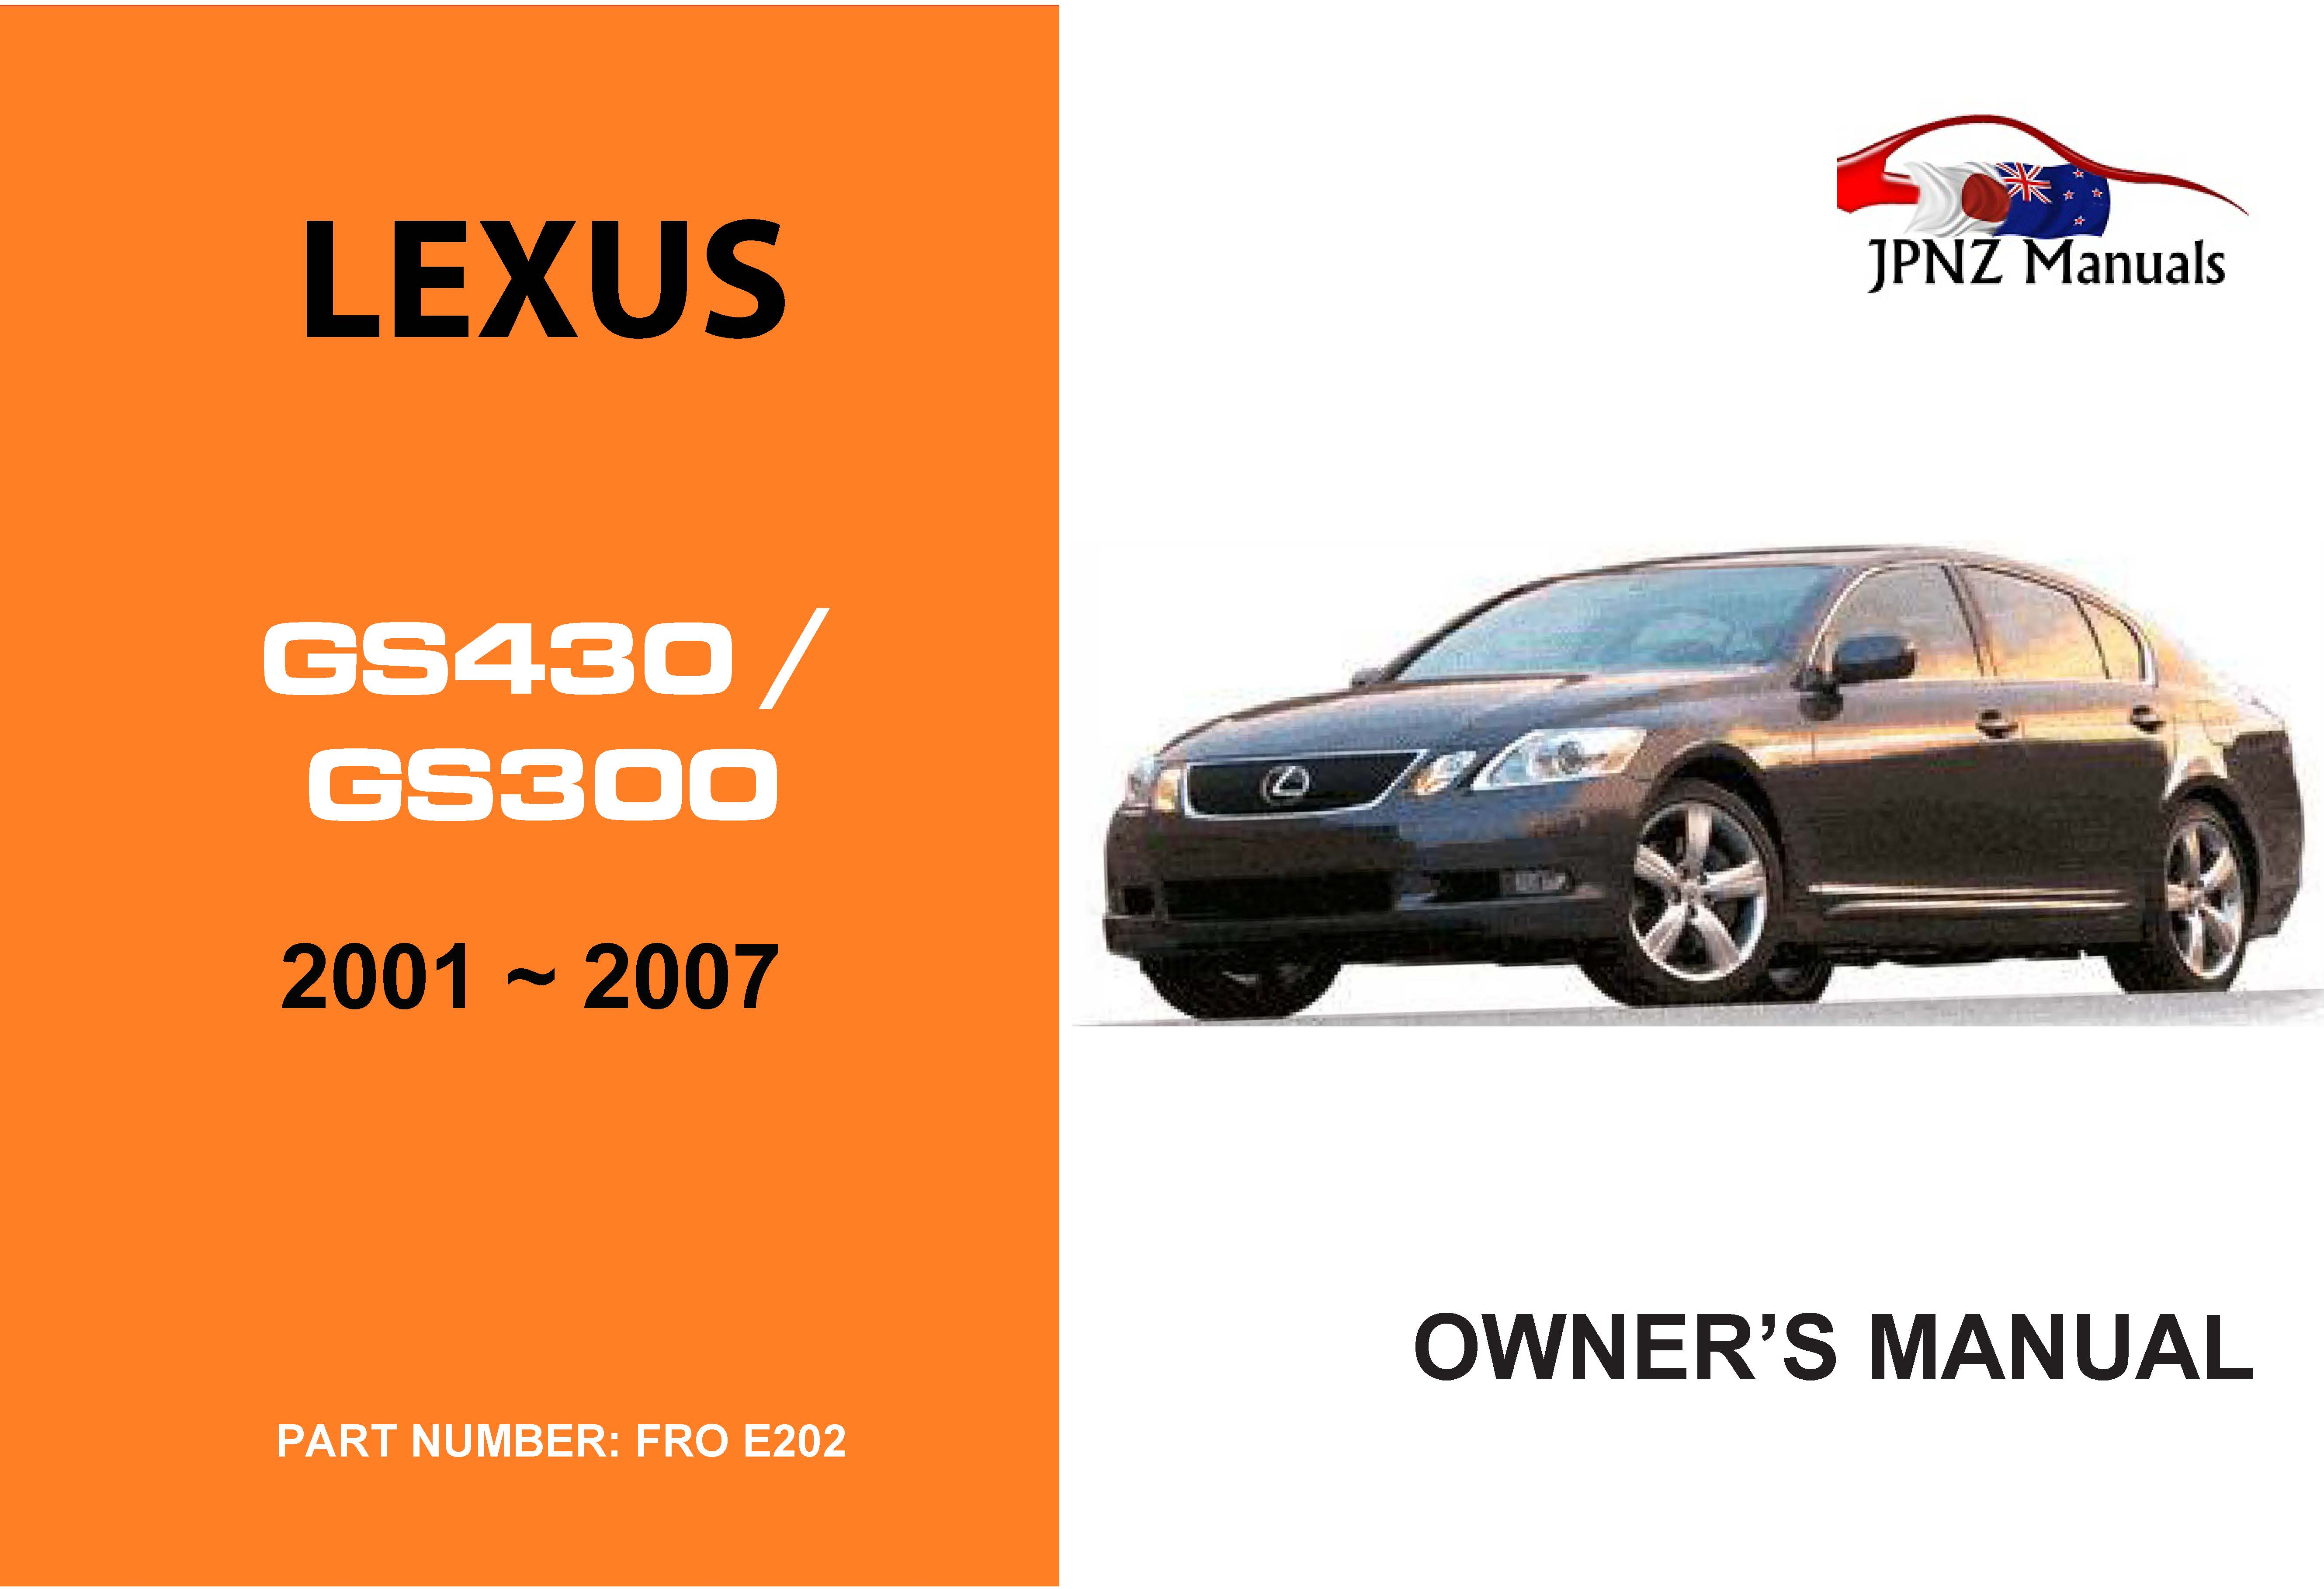 LEXUS GS430 / GS300 2001 ~ 2007 Owners User Manual In English